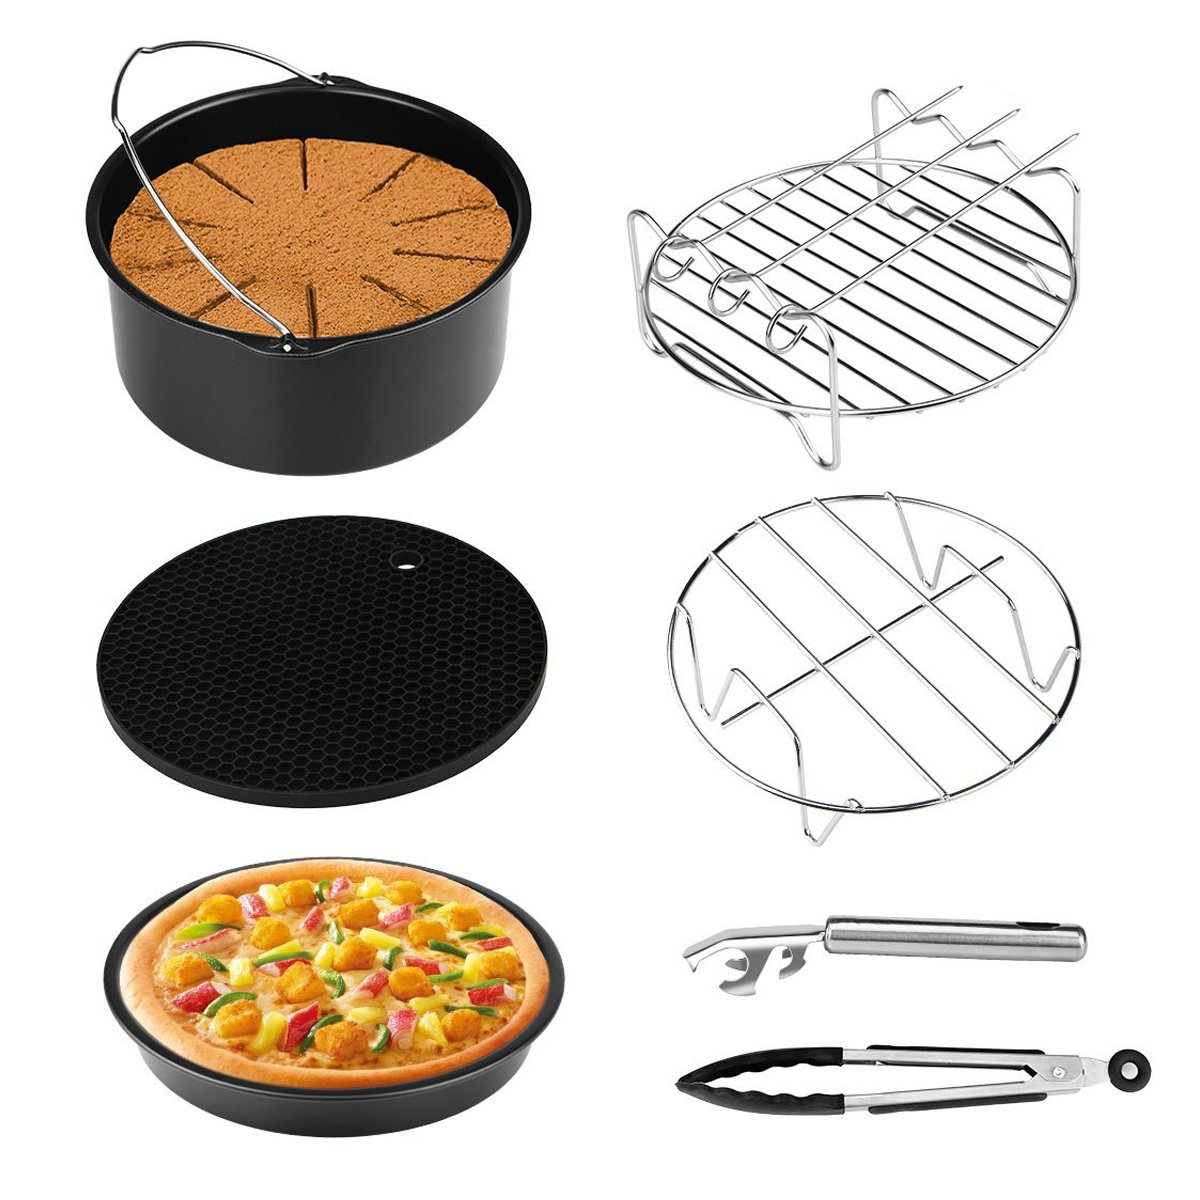 Air Fryer Accessories for Gowise Phillips and Cozyna, 7 Pcs with Cake Barrel/Pizza Pan/Silicone Mat/Metal Holder/Skewer Rack/Kitchen Tong/Bowl Clip, Fit all 3.7QT-5.3QT-5.8QT by Aiduy (Image #1)